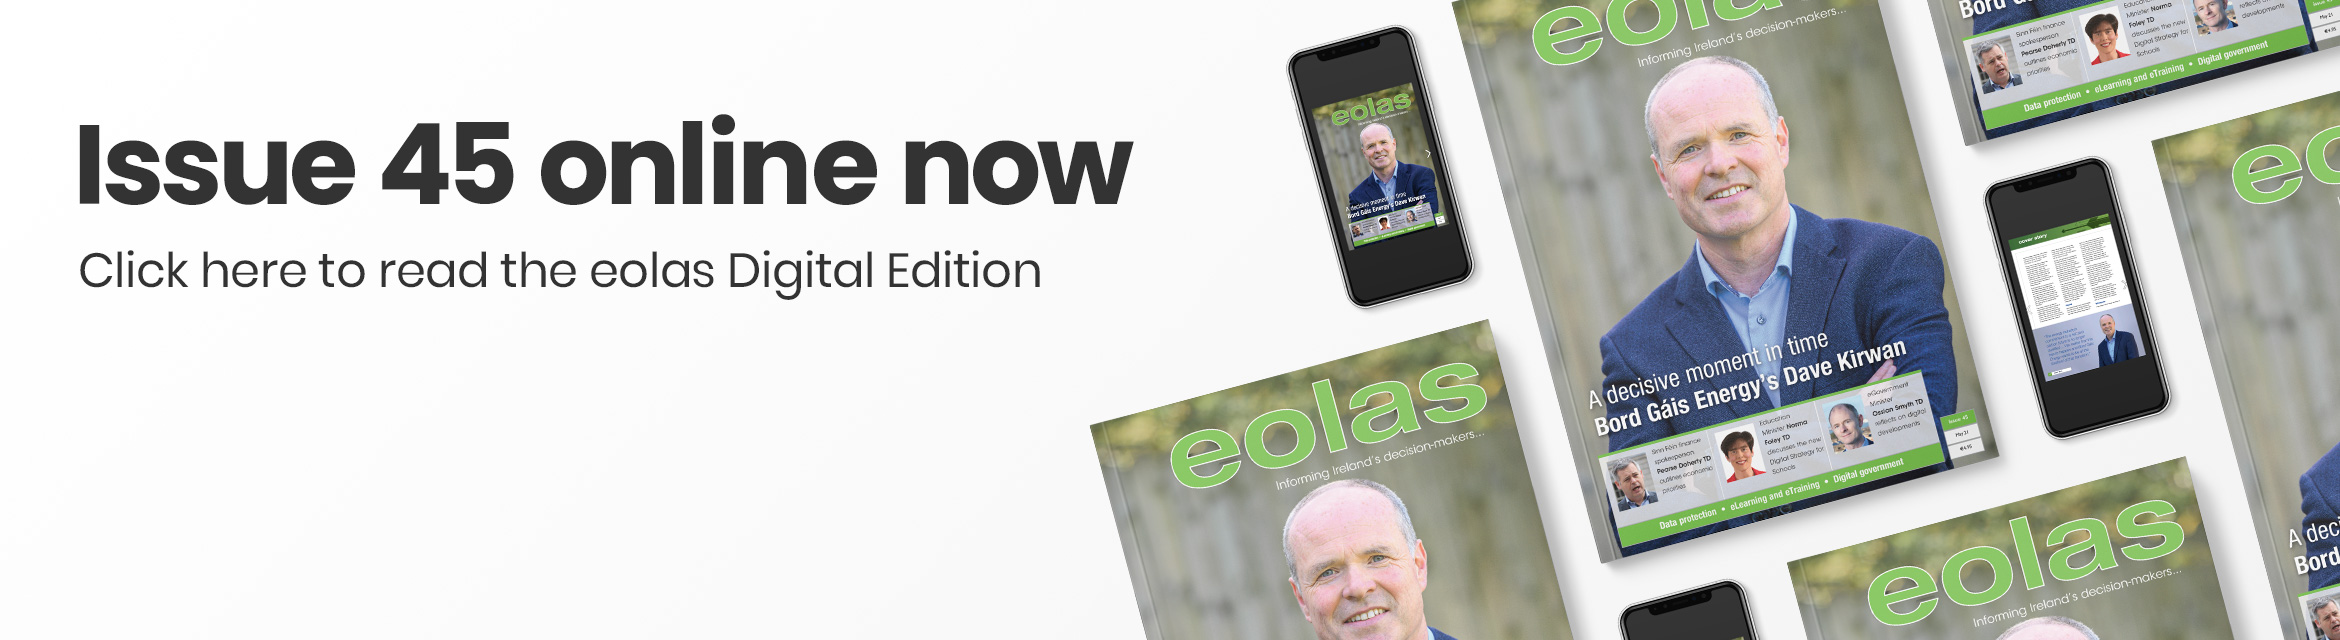 Issue 45 online now • Read the eolas Digital Edition